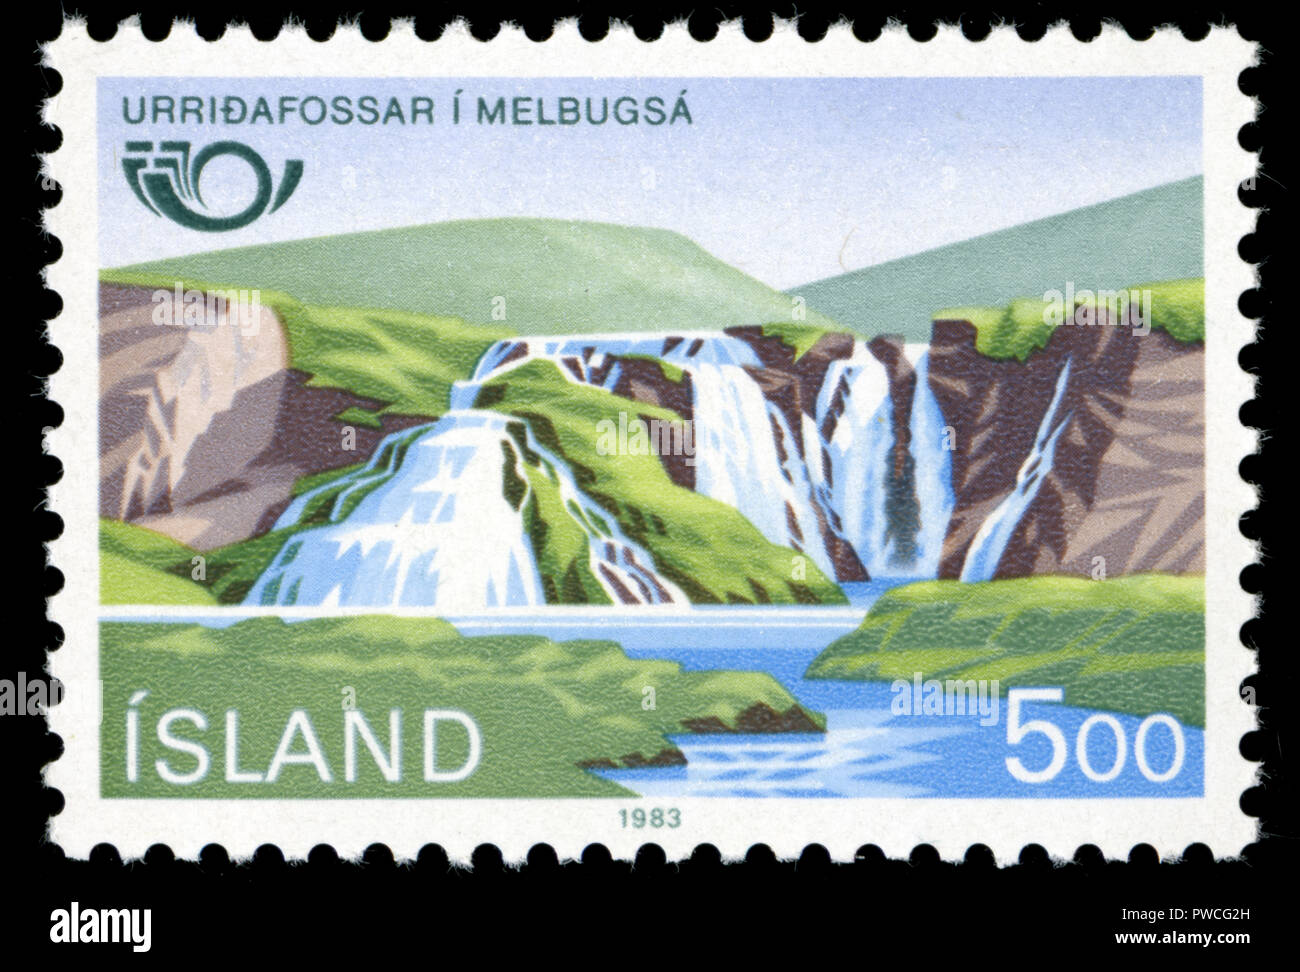 Postmarked stamp from Iceland in the Norden series issued in 1983 - Stock Image